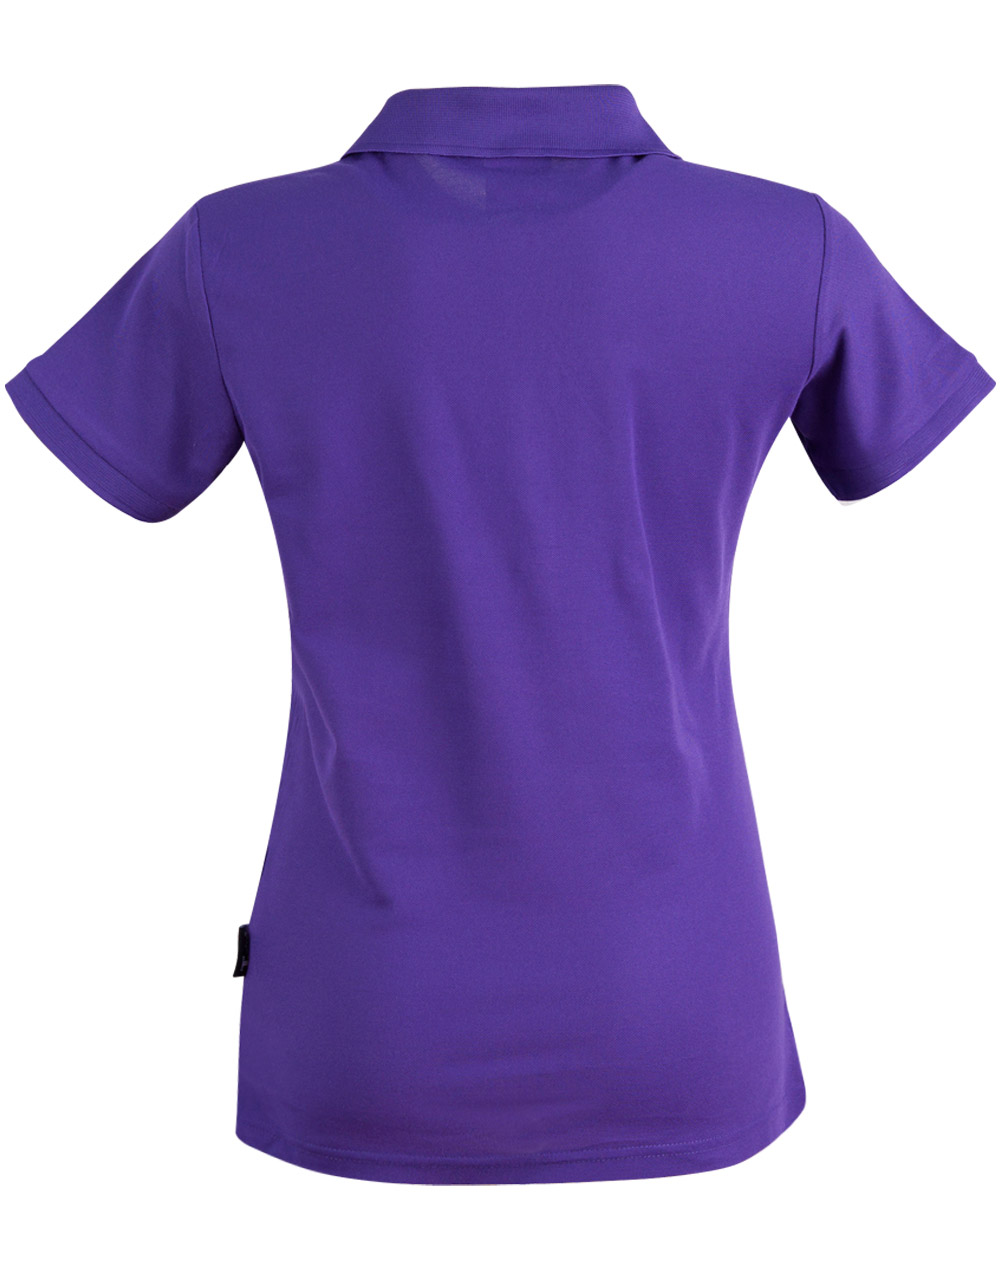 https://s3-ap-southeast-1.amazonaws.com/ws-imgs/POLOSHIRTS/PS64_Purple_Back.jpg